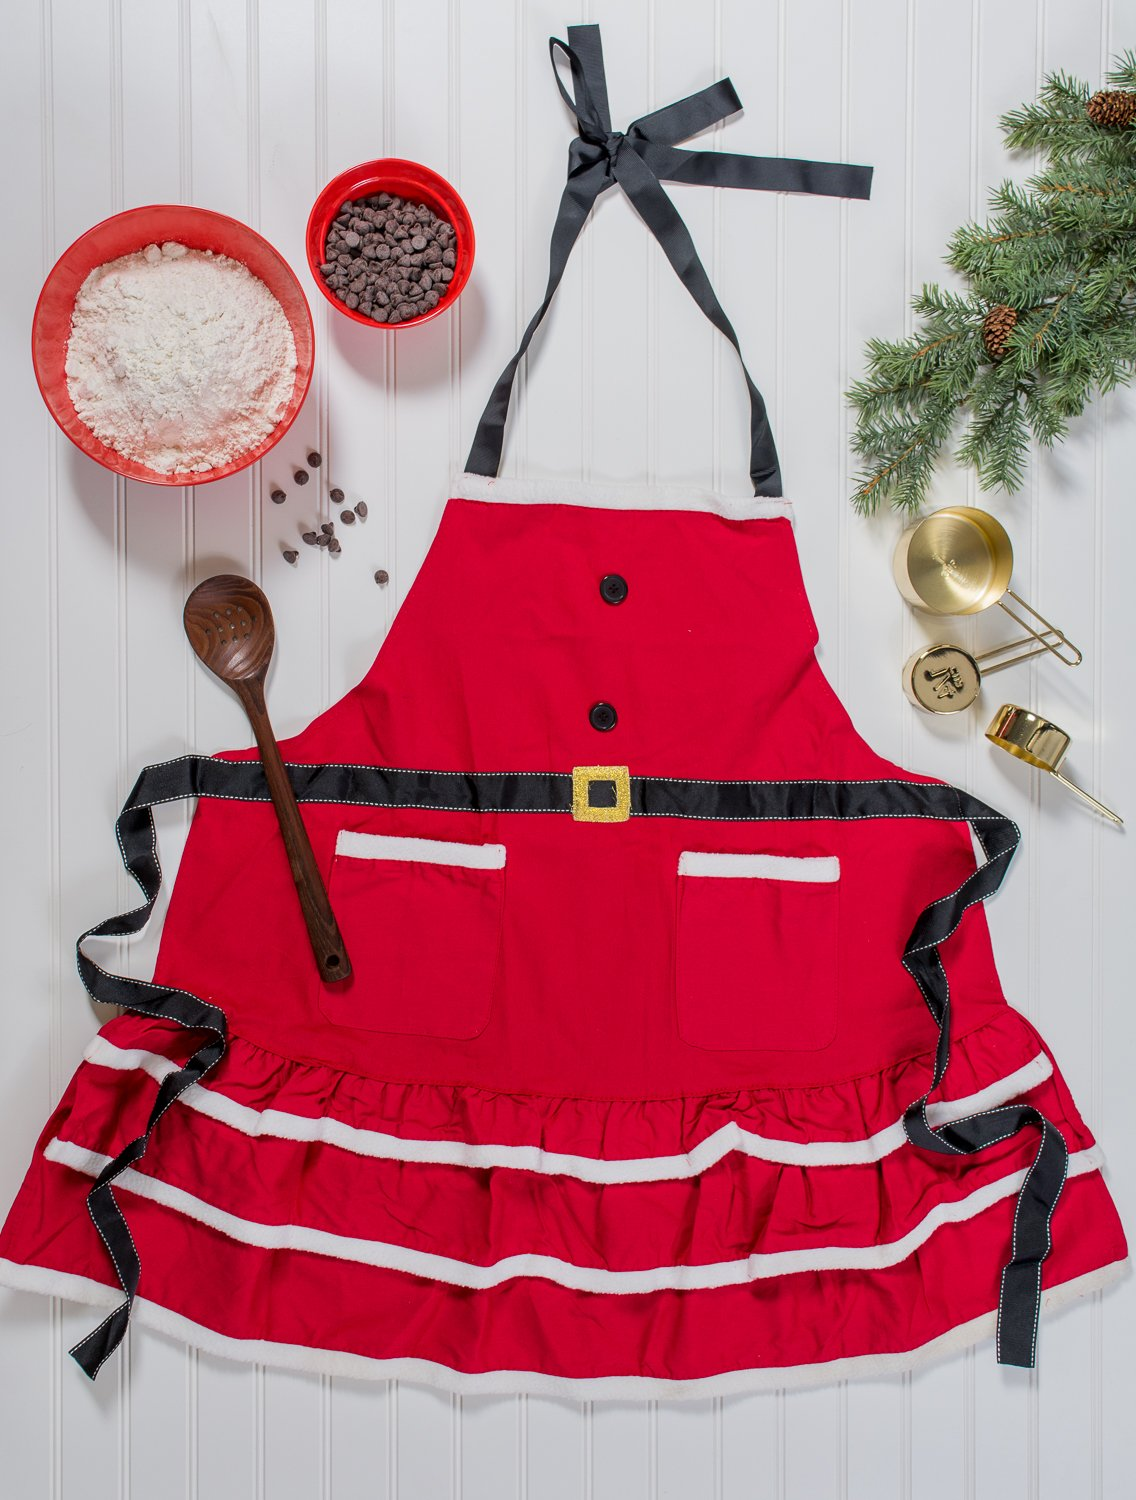 DII Cotton Chistmas Kitchen Apron with Pocket and Extra Long Ties, 29.5 x 24, Cute Women Ruffle Apron for Holidays, Hostee and Housewarming Gift-Mrs. Claus by DII (Image #5)